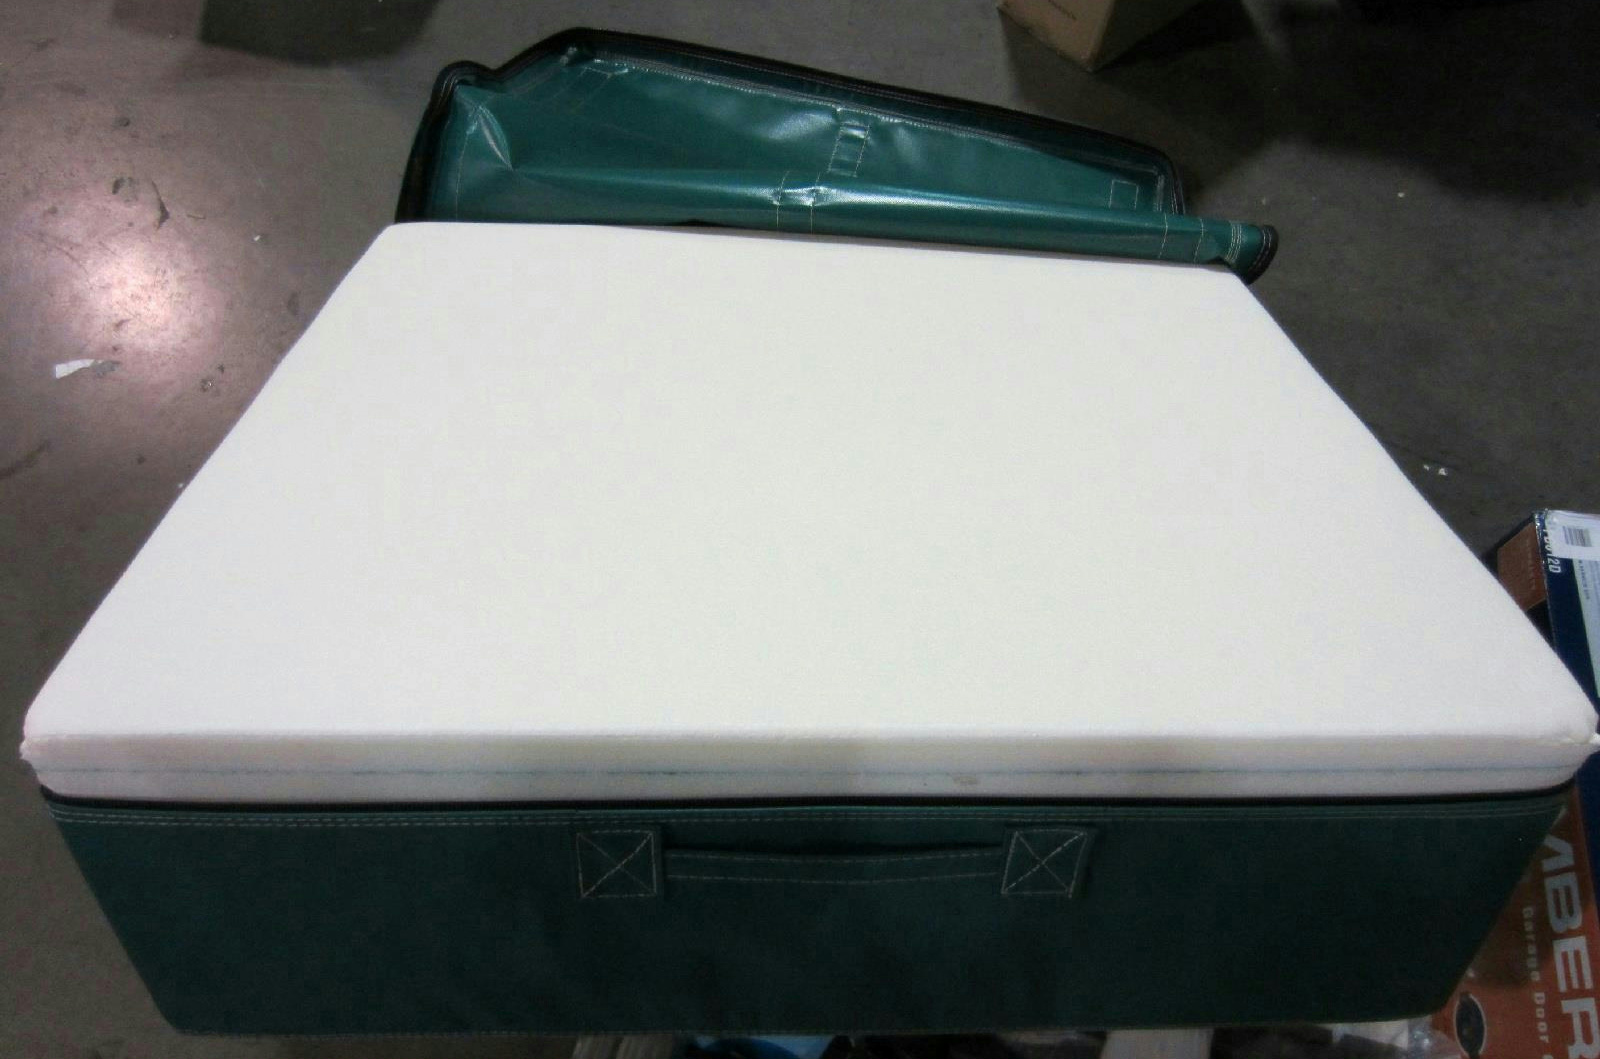 Ucs 36 39 39 x 12 39 39 x 30 39 39 plyo box green ebay for Plyo box template